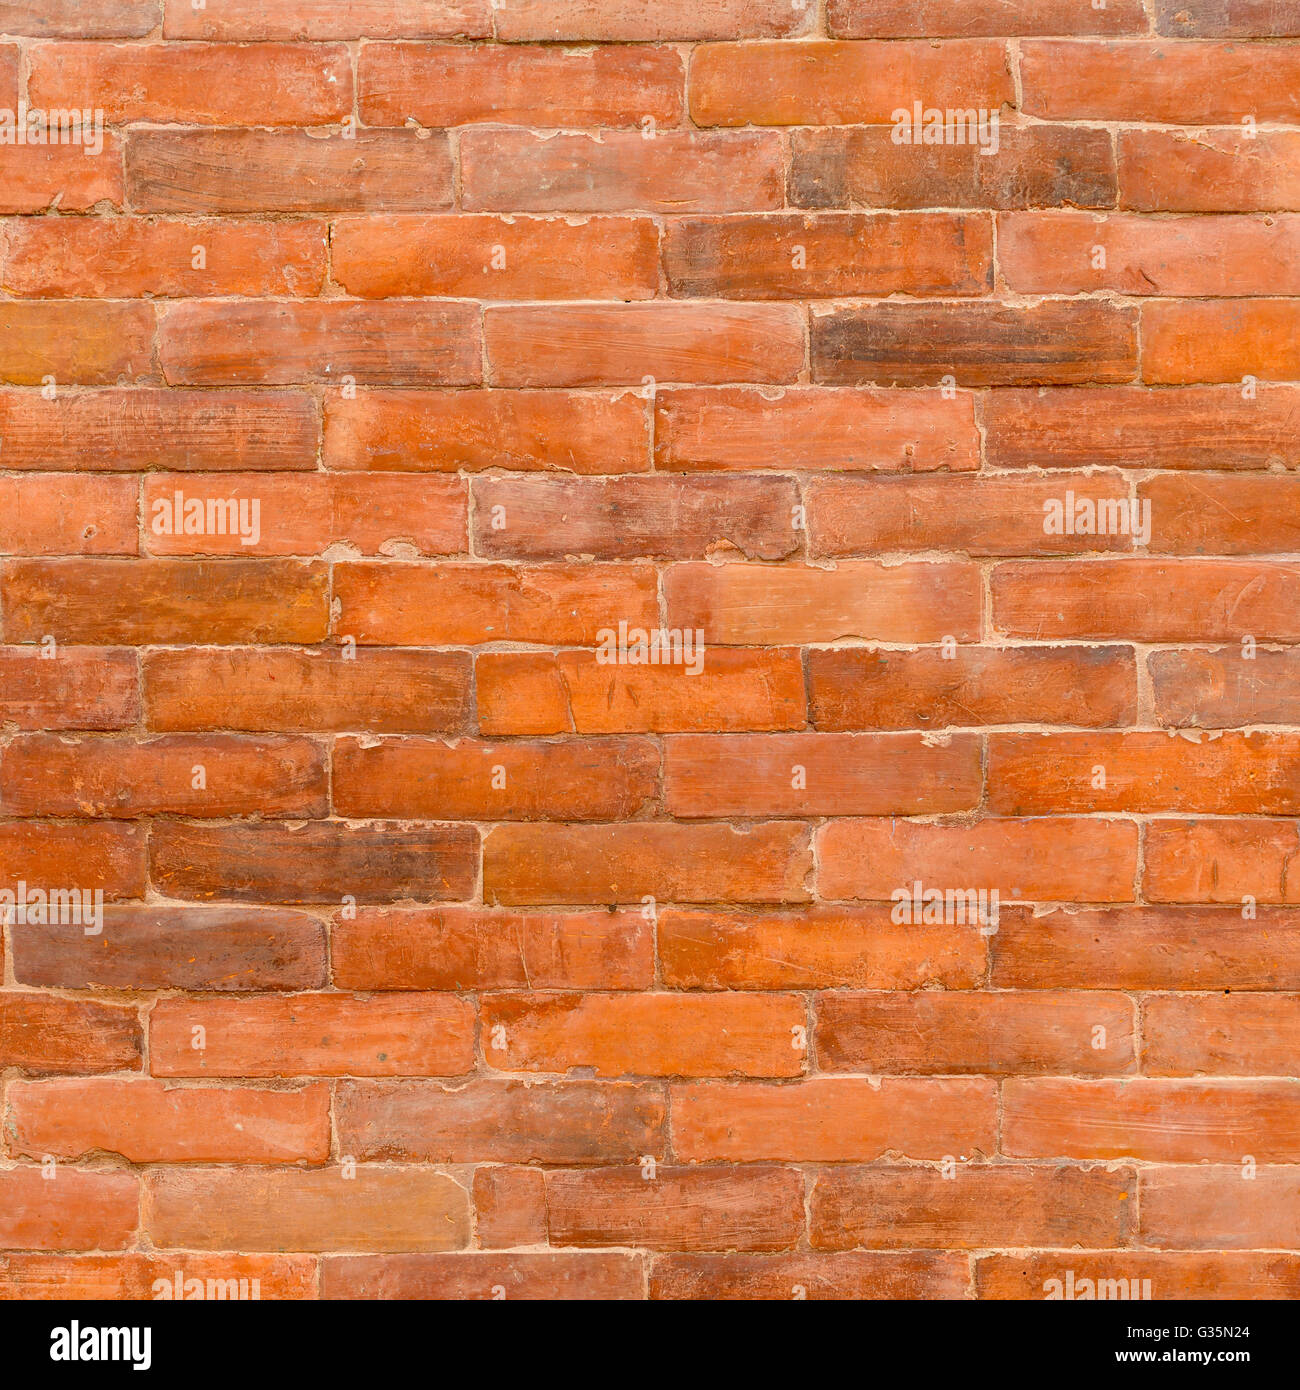 Traditional Nepalese glazed brick wall texture, perfect as a background - Stock Image